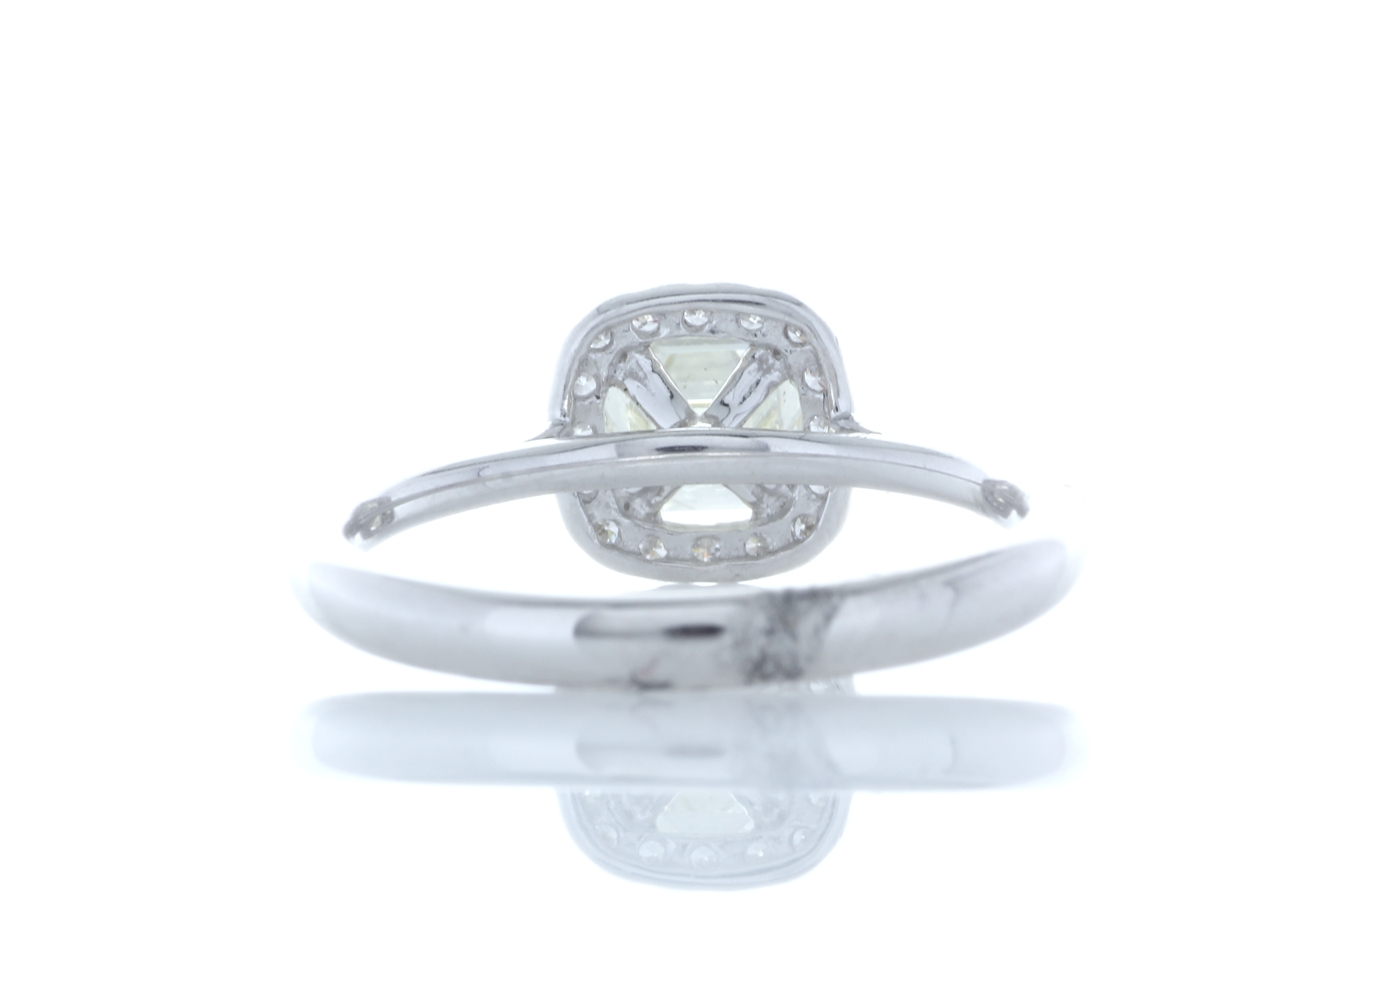 18ct White Gold Single Stone With Halo Setting Ring (1.01) 1.27 Carats - Image 3 of 6